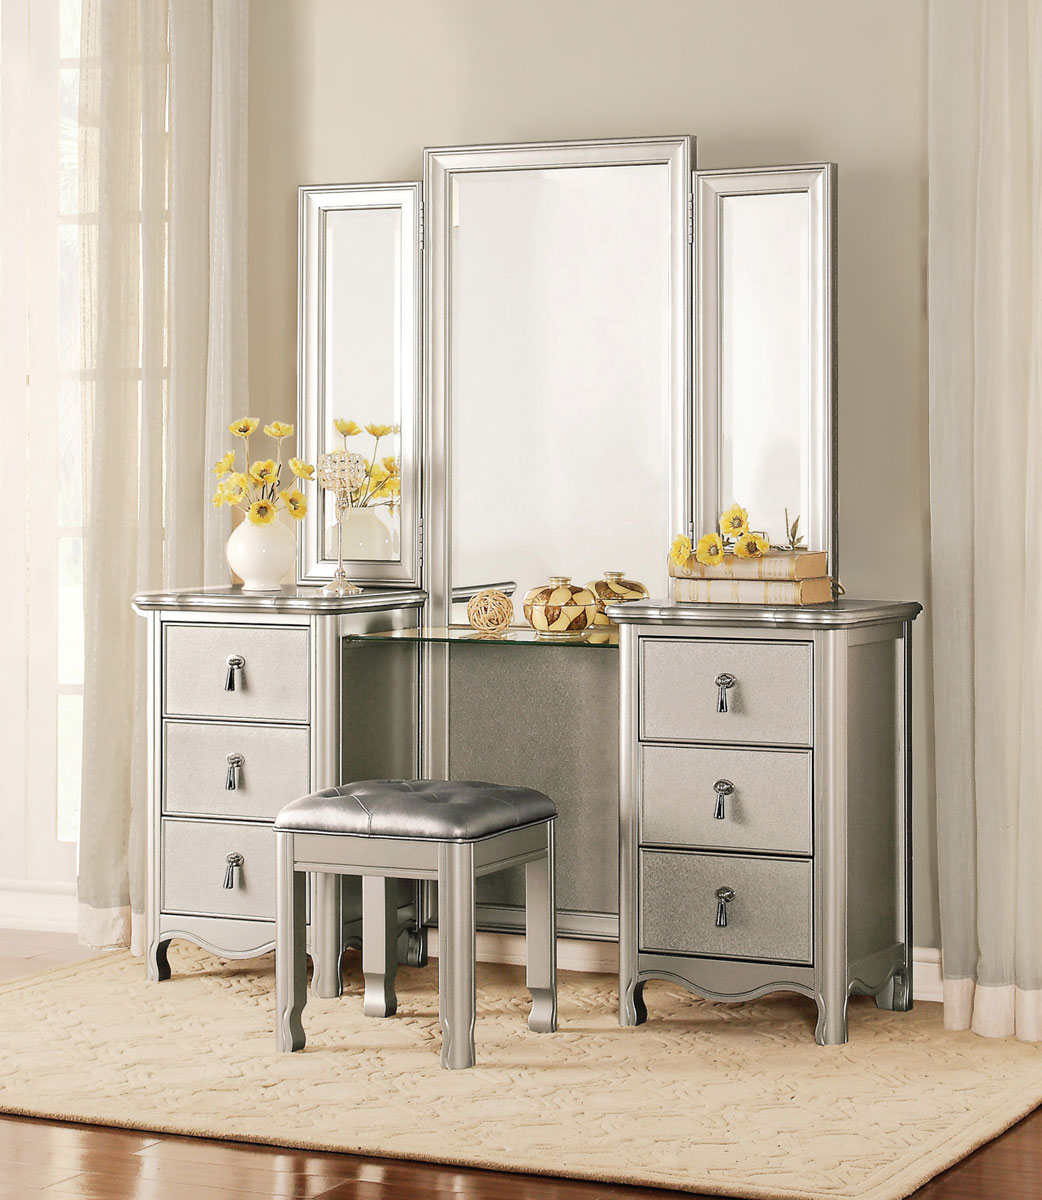 Homelegance Toulouse Vanity Dresser with Mirror - Champagne